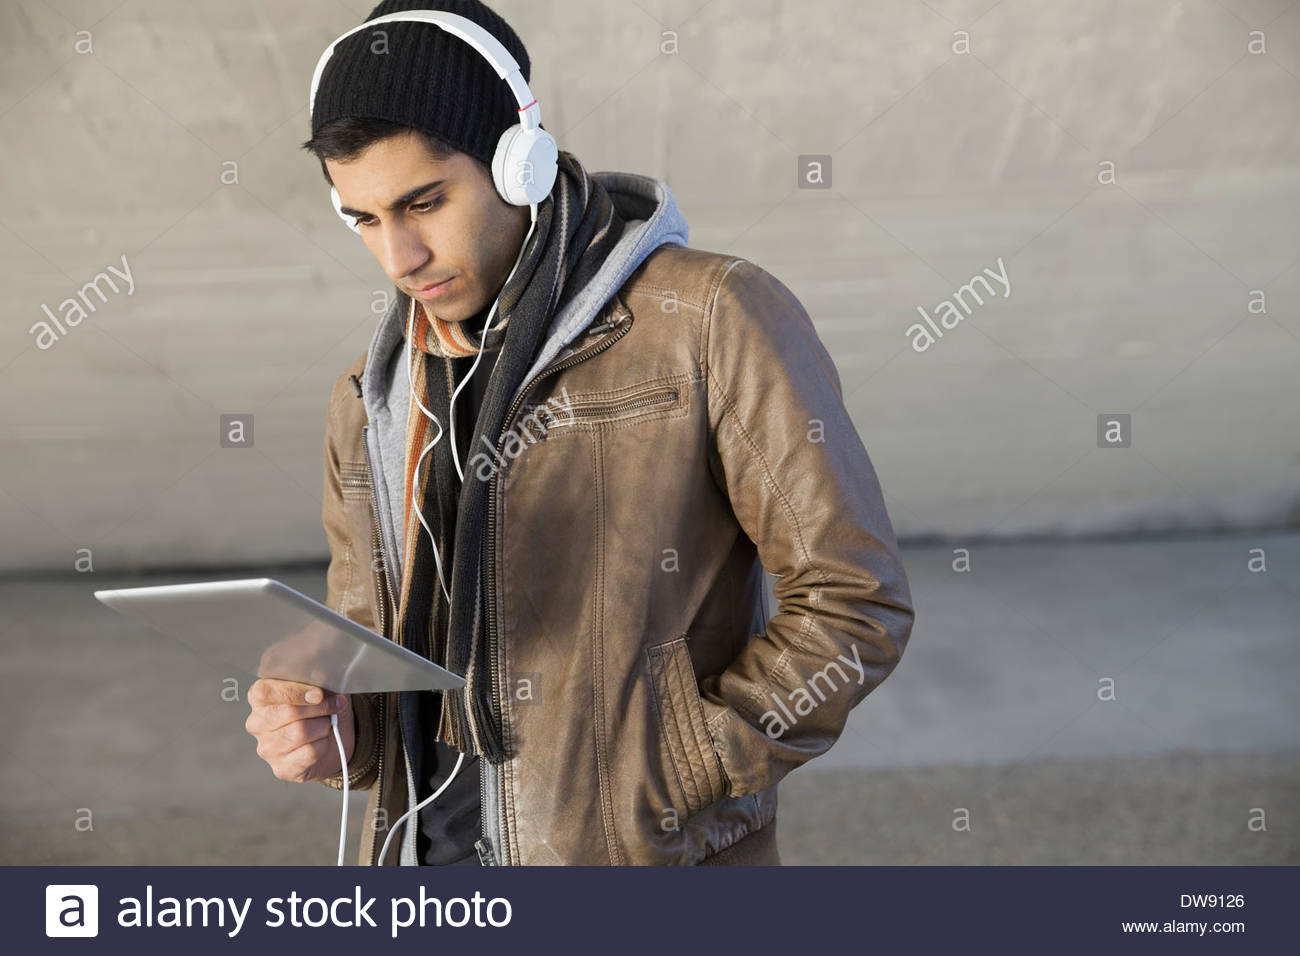 Man standing outdoors with digital tablet and headphones - Stock Image